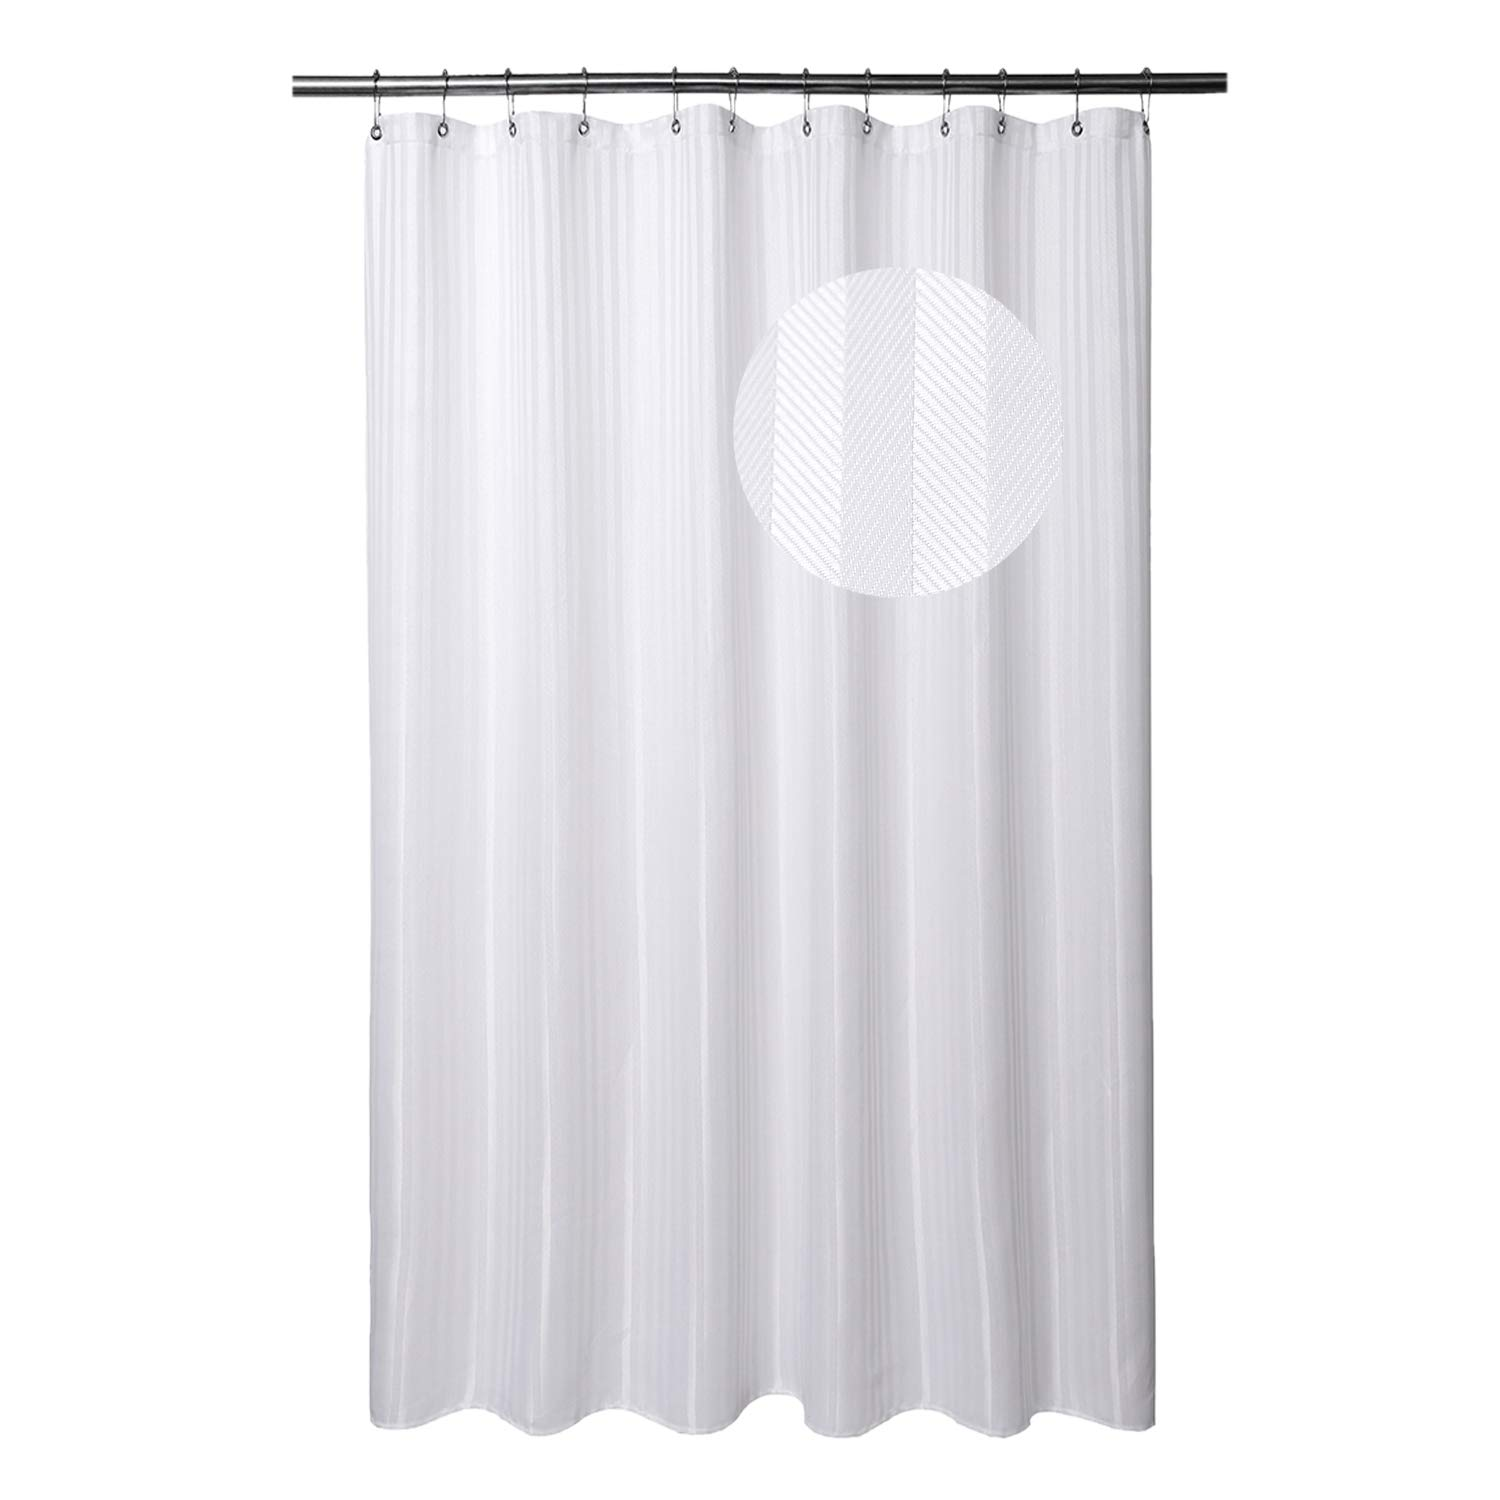 Barossa Design Long Shower Curtain Fabric with 78 inches Longer Size - Hotel Grade, Machine Washable,Water-Repellant and Midew Resistant - White Stripe Damask (160 GSM Heavyweight), 71''x78''